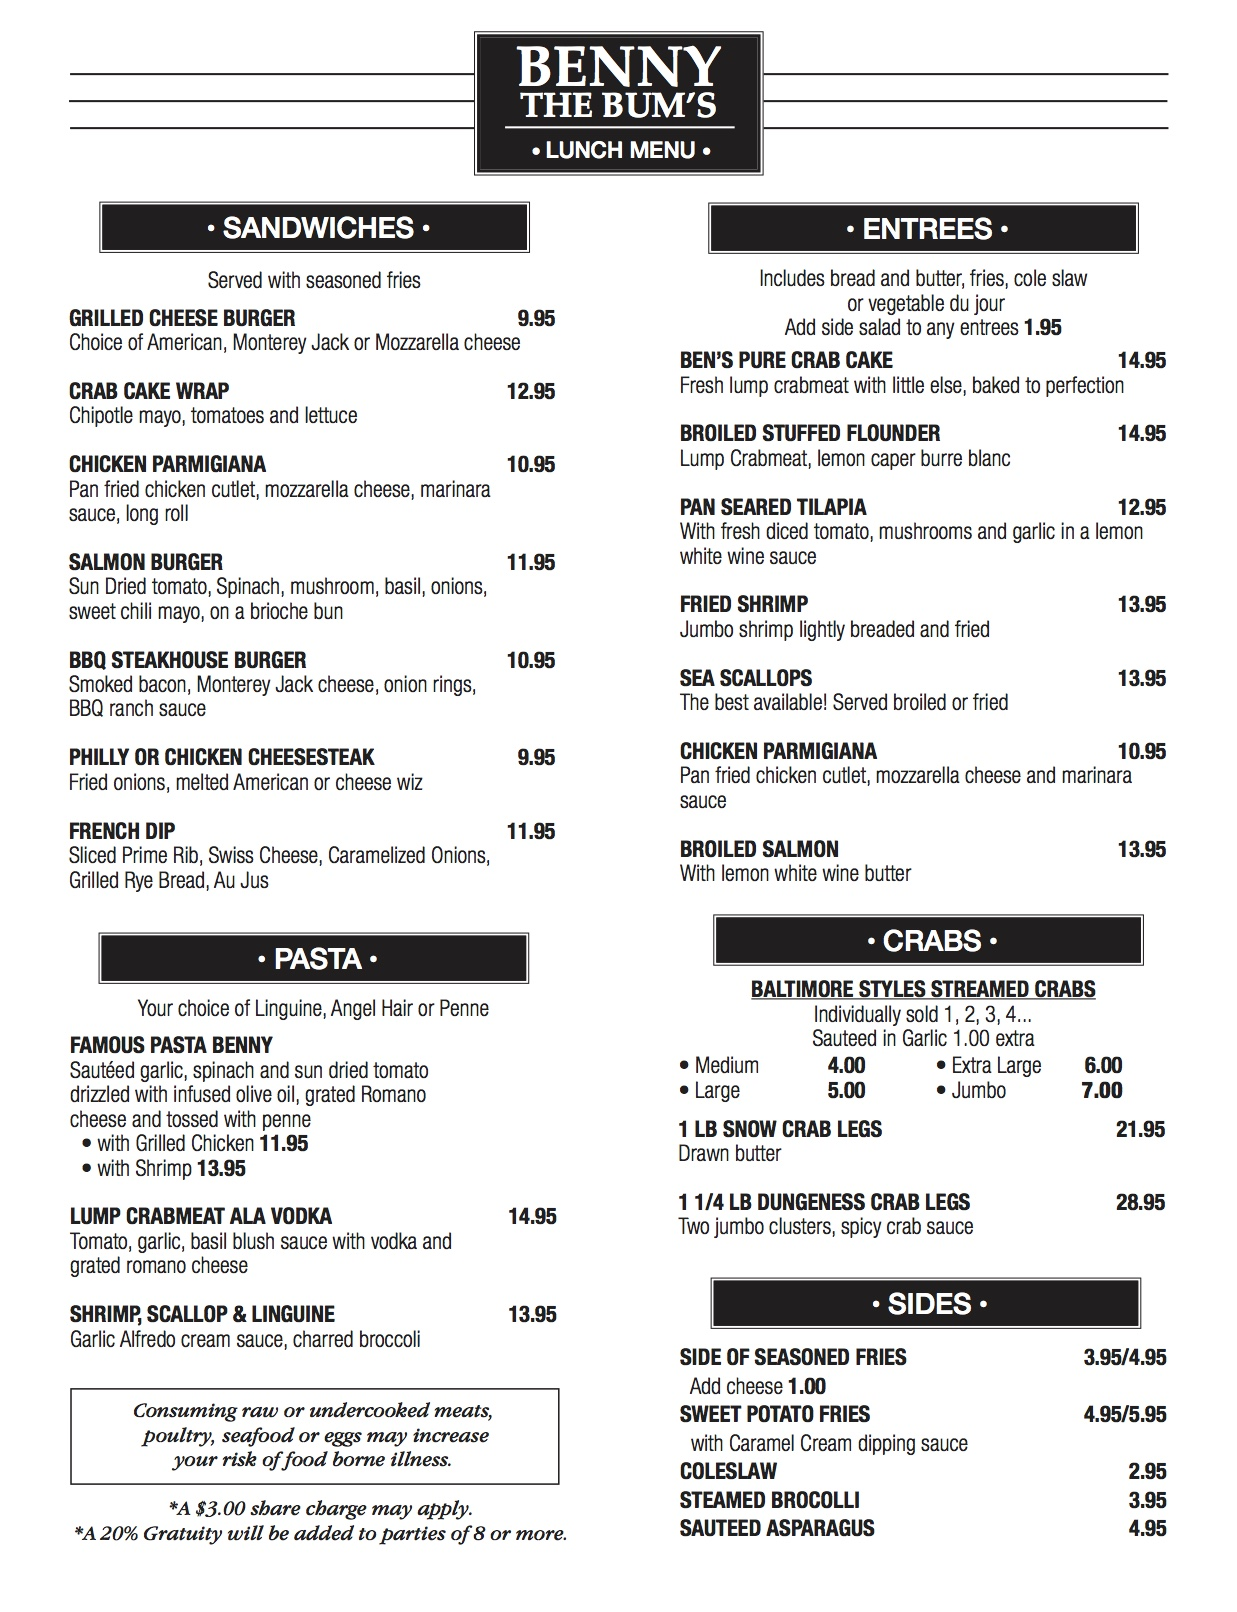 Benny NE Take out Lunch Menu